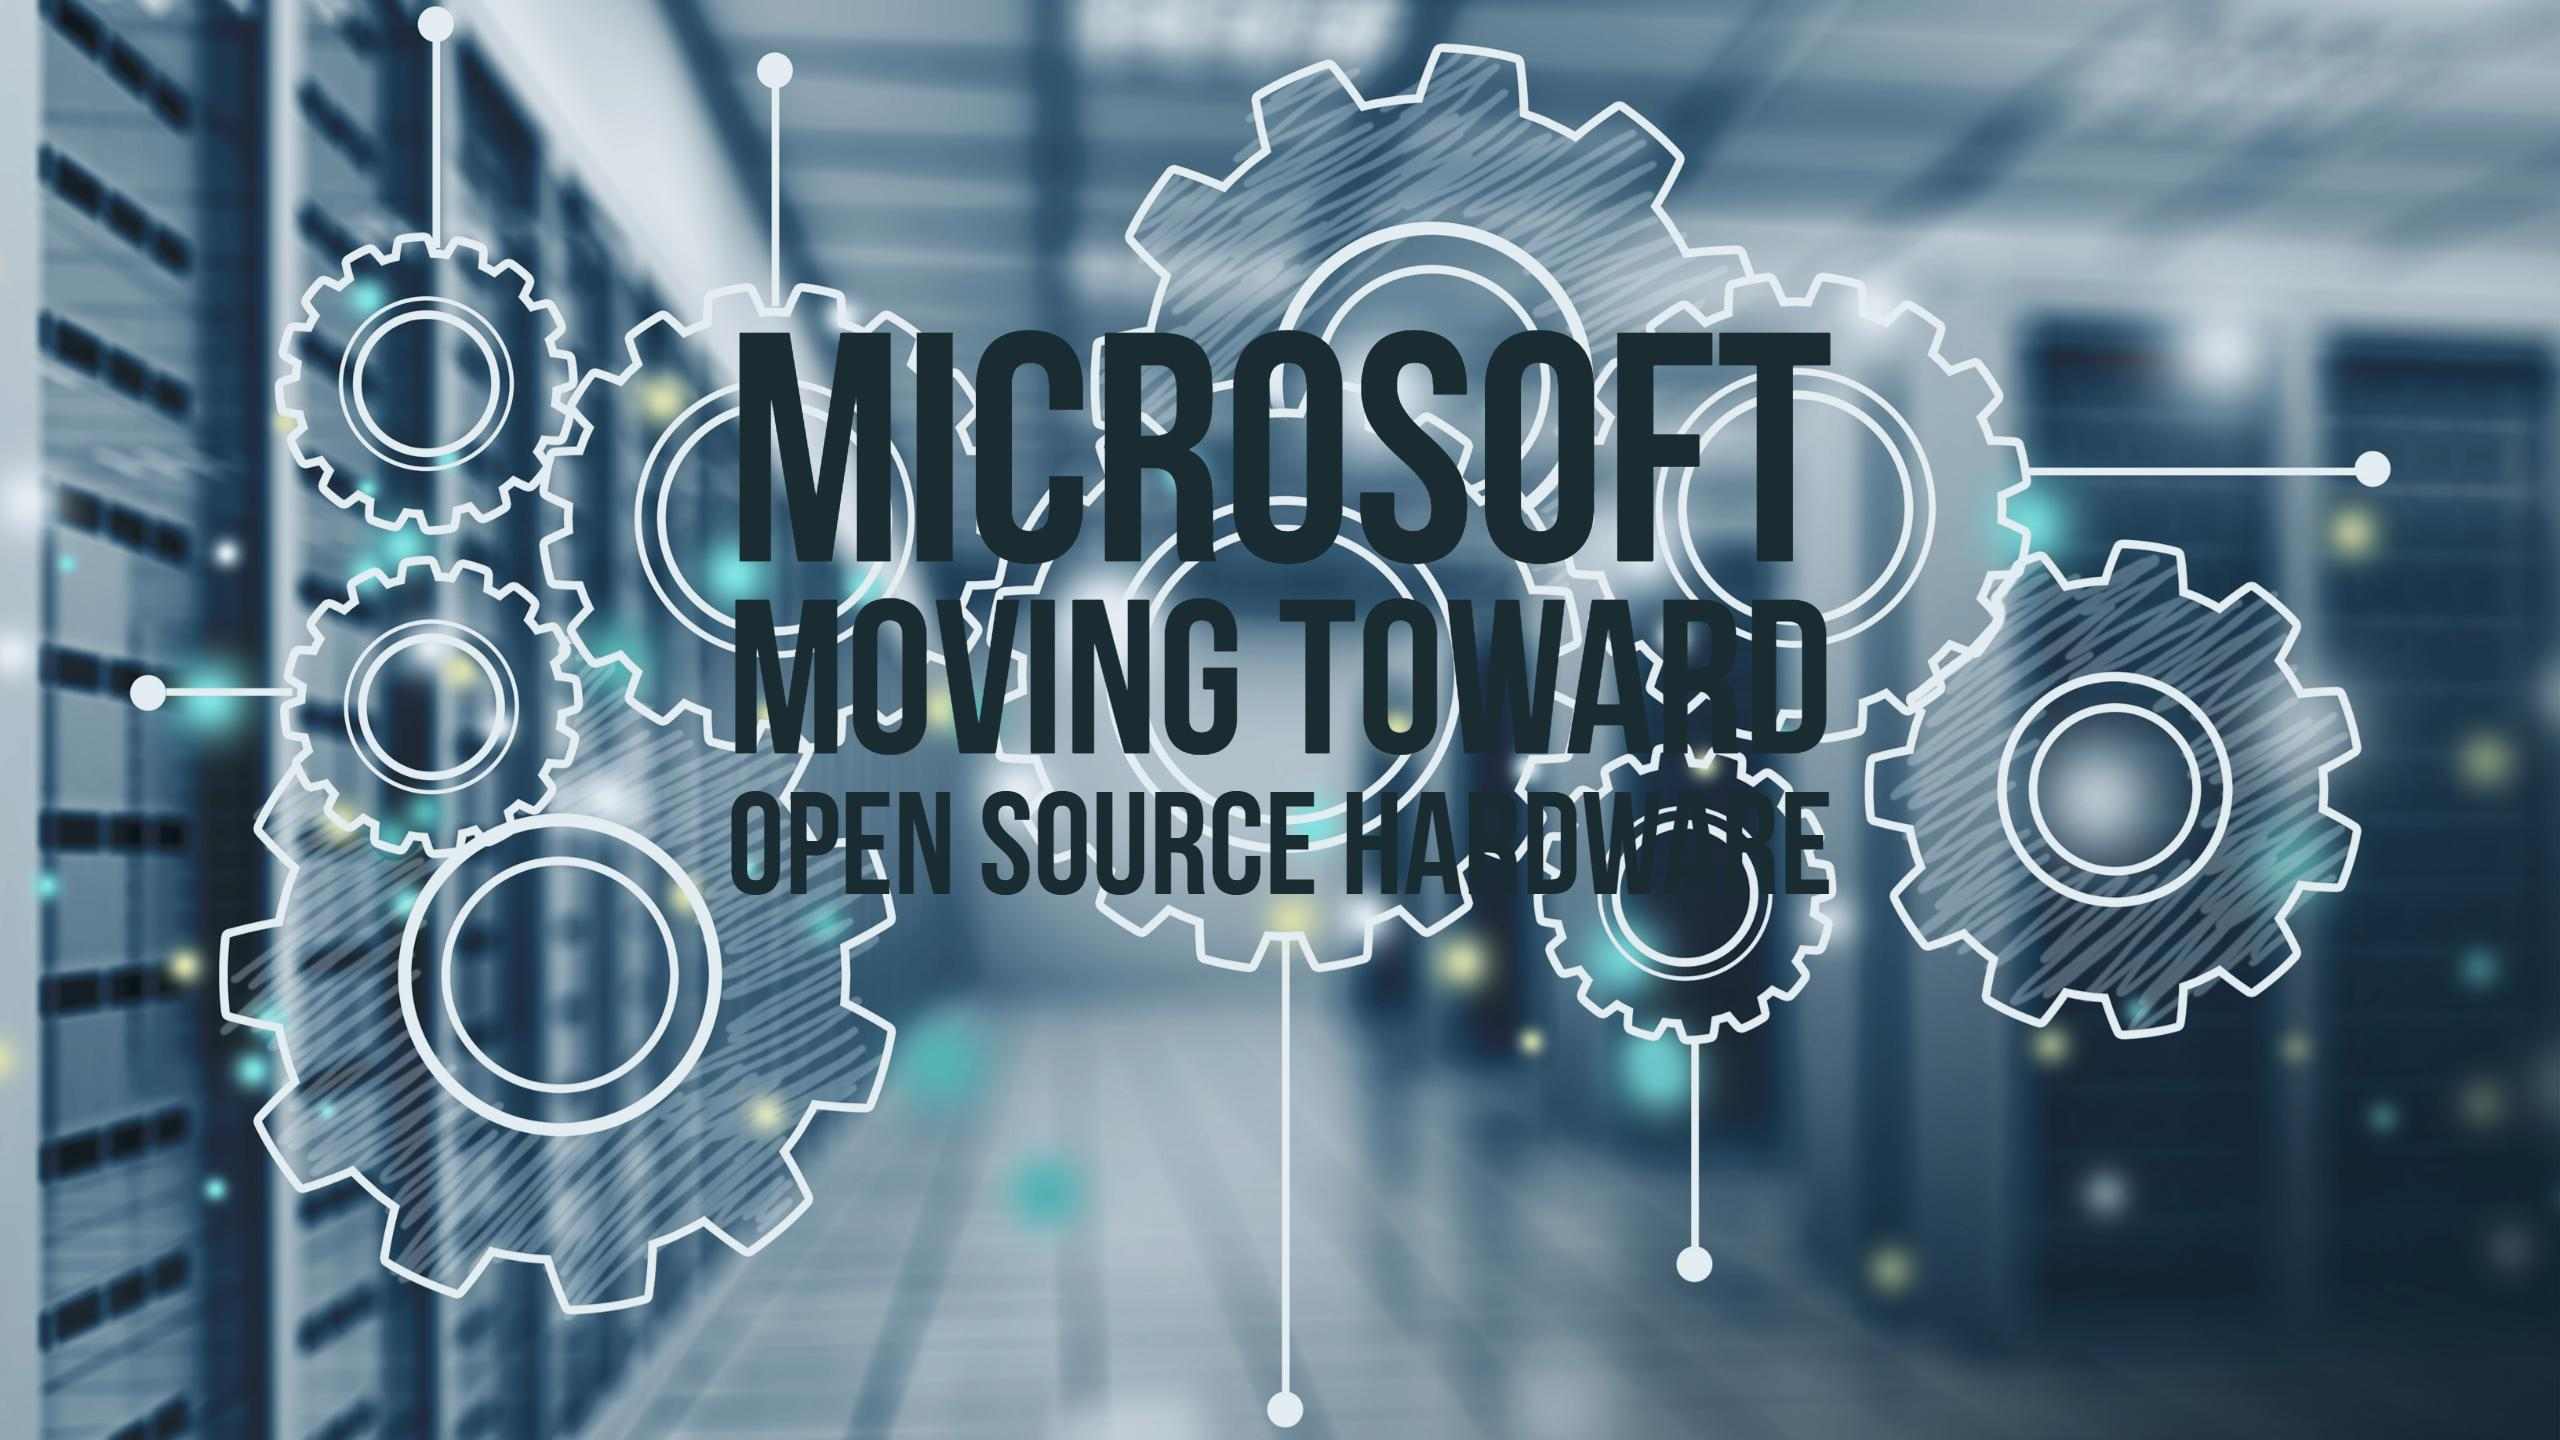 Microsoft Moving Toward Open Source Hardware